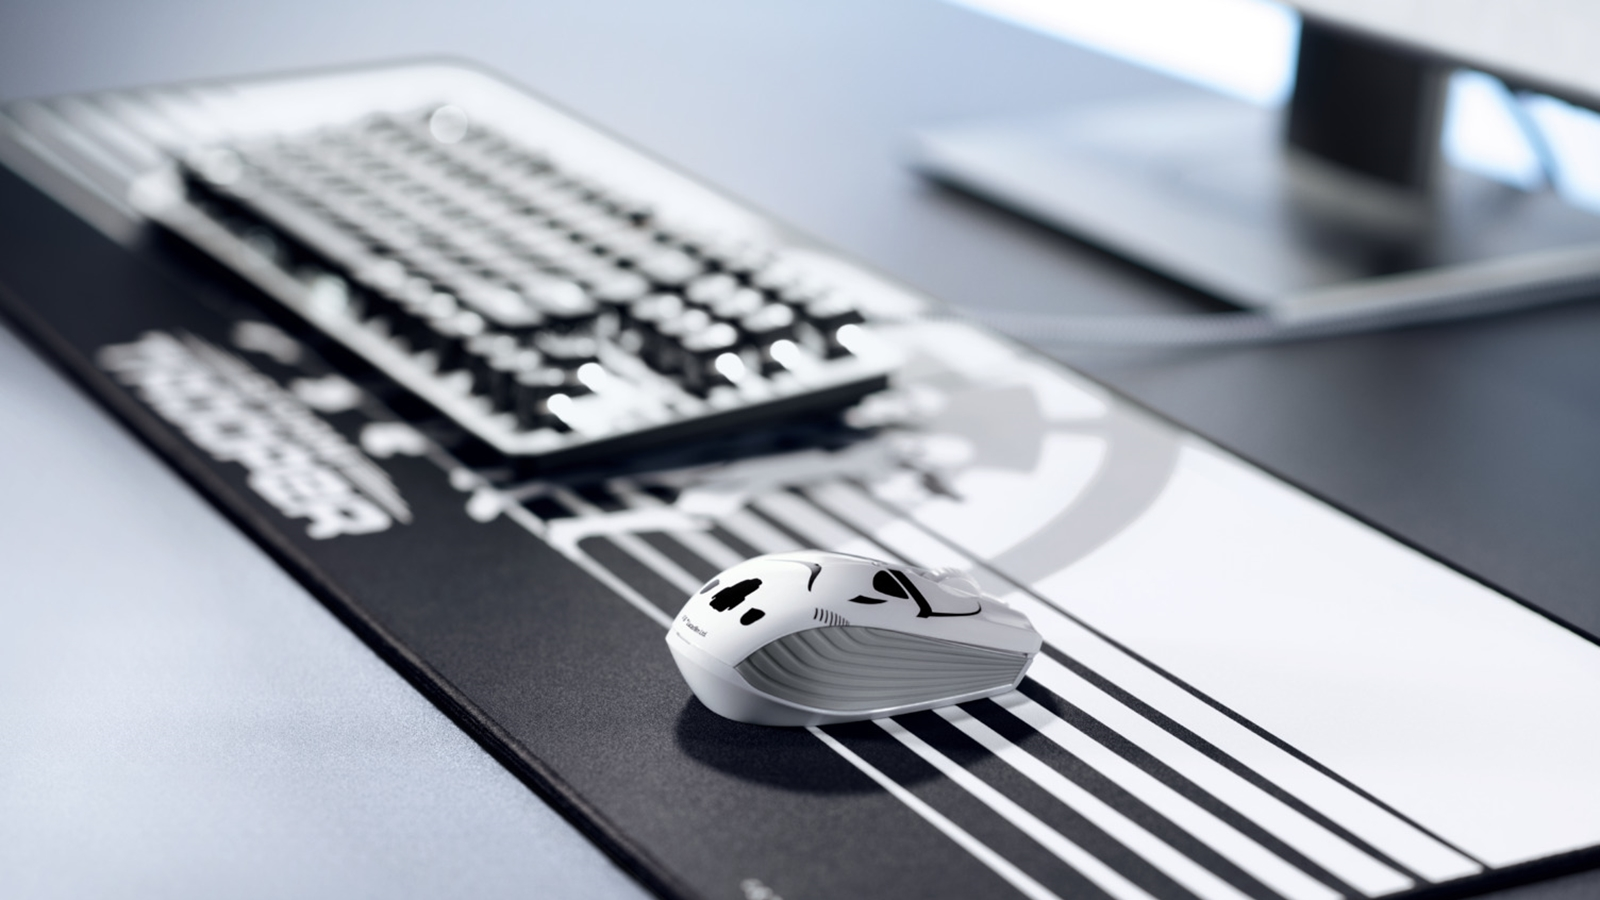 Razer Celebrates Star Wars With New Stormtrooper Themed Peripherals Gameaxis